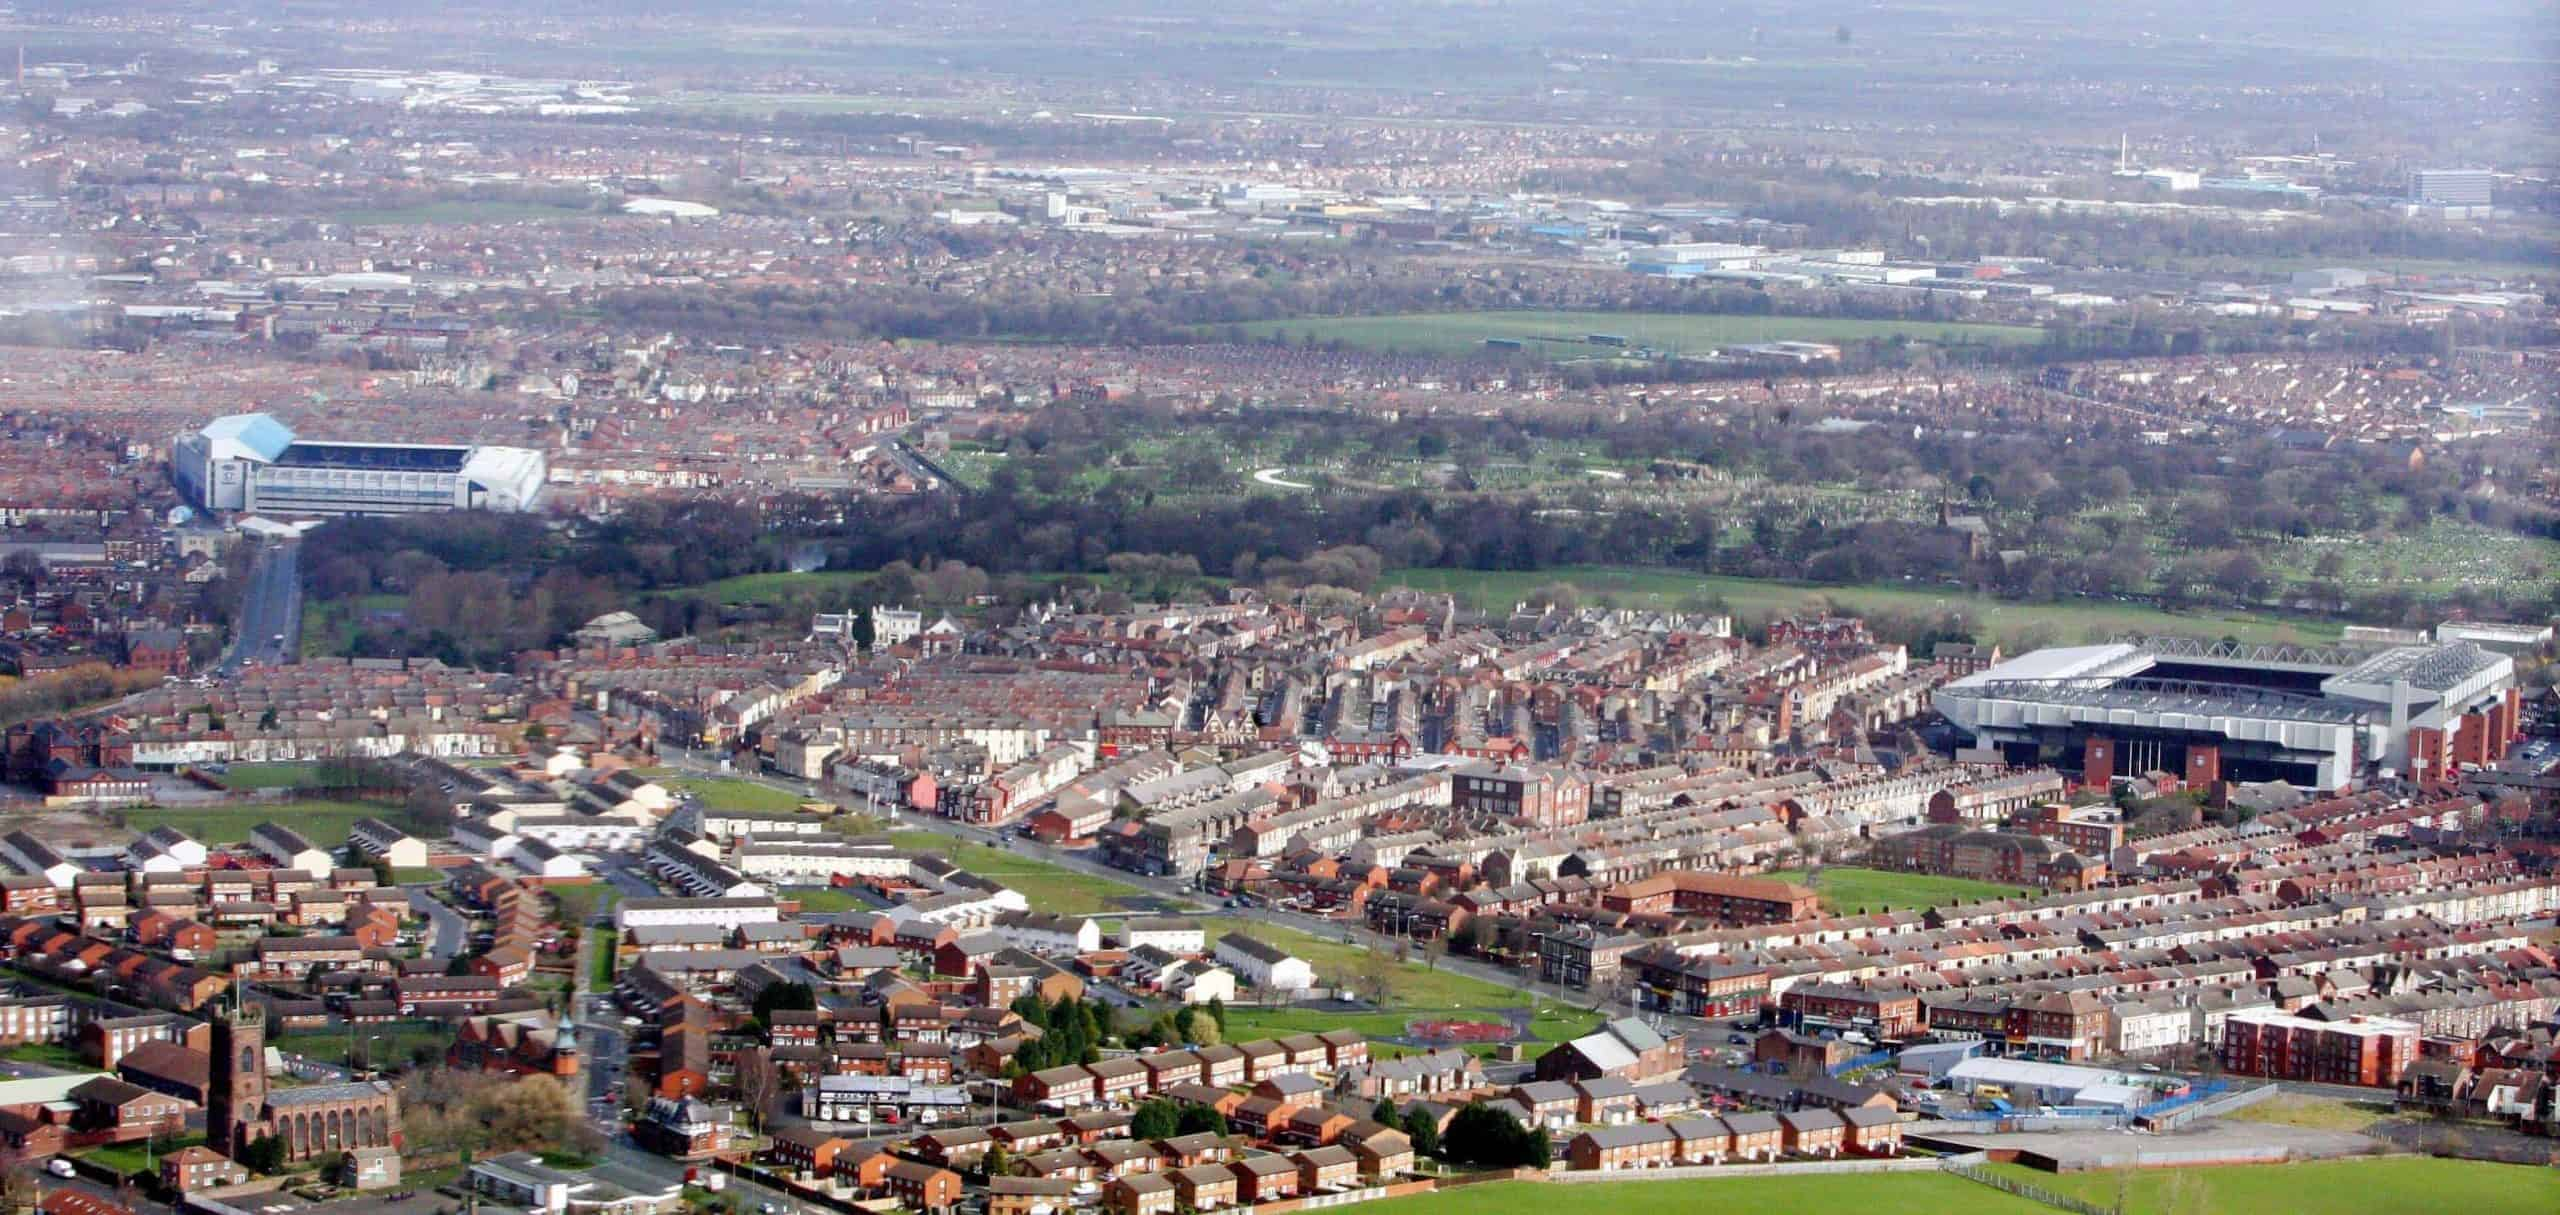 Aerial view of (right) Anfield Stadium home of Premier League Liverpool Football Club with Stanley Park behind. Stanley Park is the proposed new location for the new build stadium. and (Left) Goodison Park home of Everton Football Club (Picture by: Peter Byrne / PA Archive/Press Association Images)